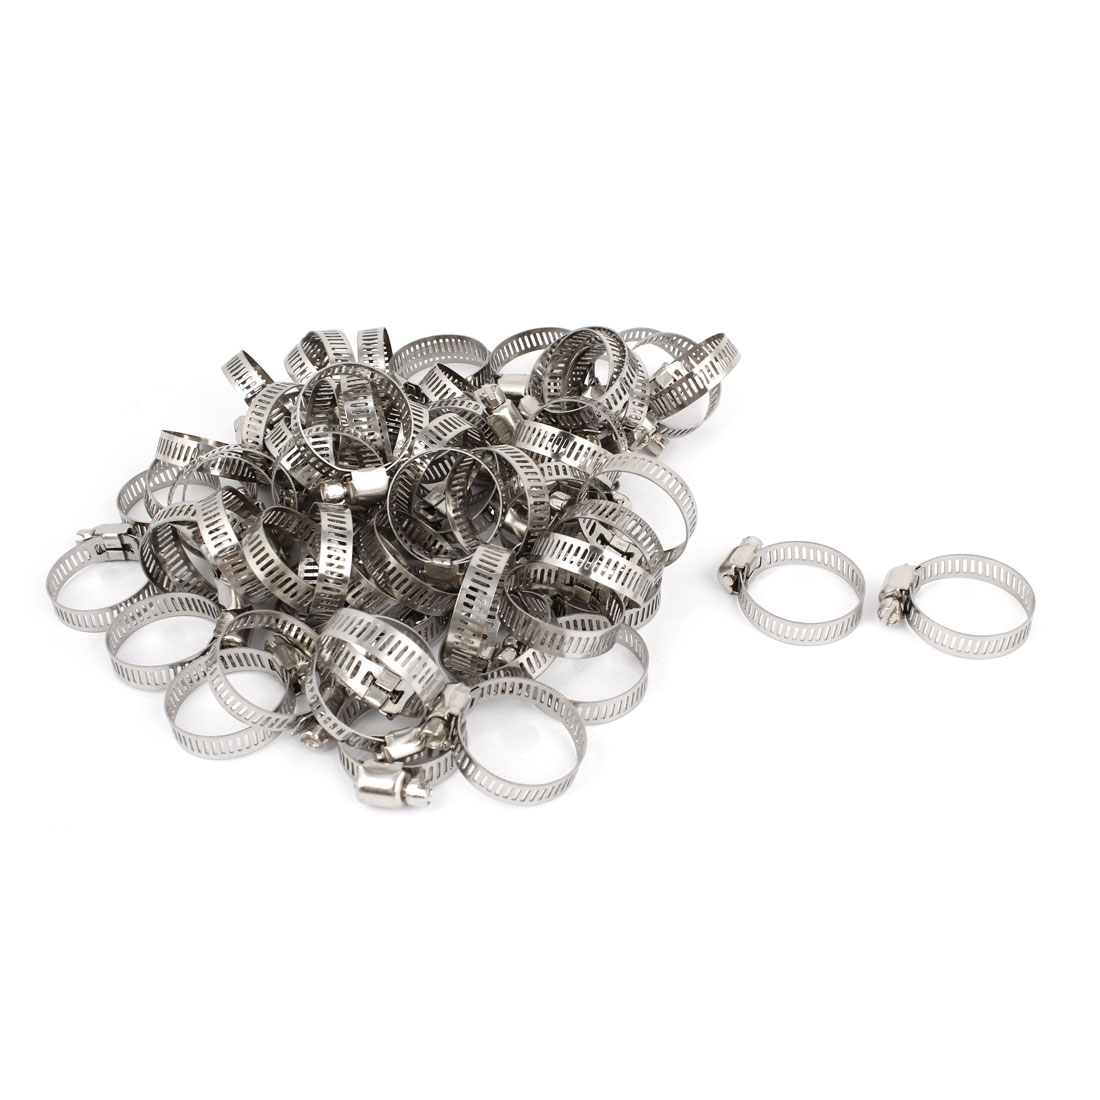 100 Pcs 18-29mm Stainless Steel Cut Out Adjustable Band Worm Drive Hose Clamps